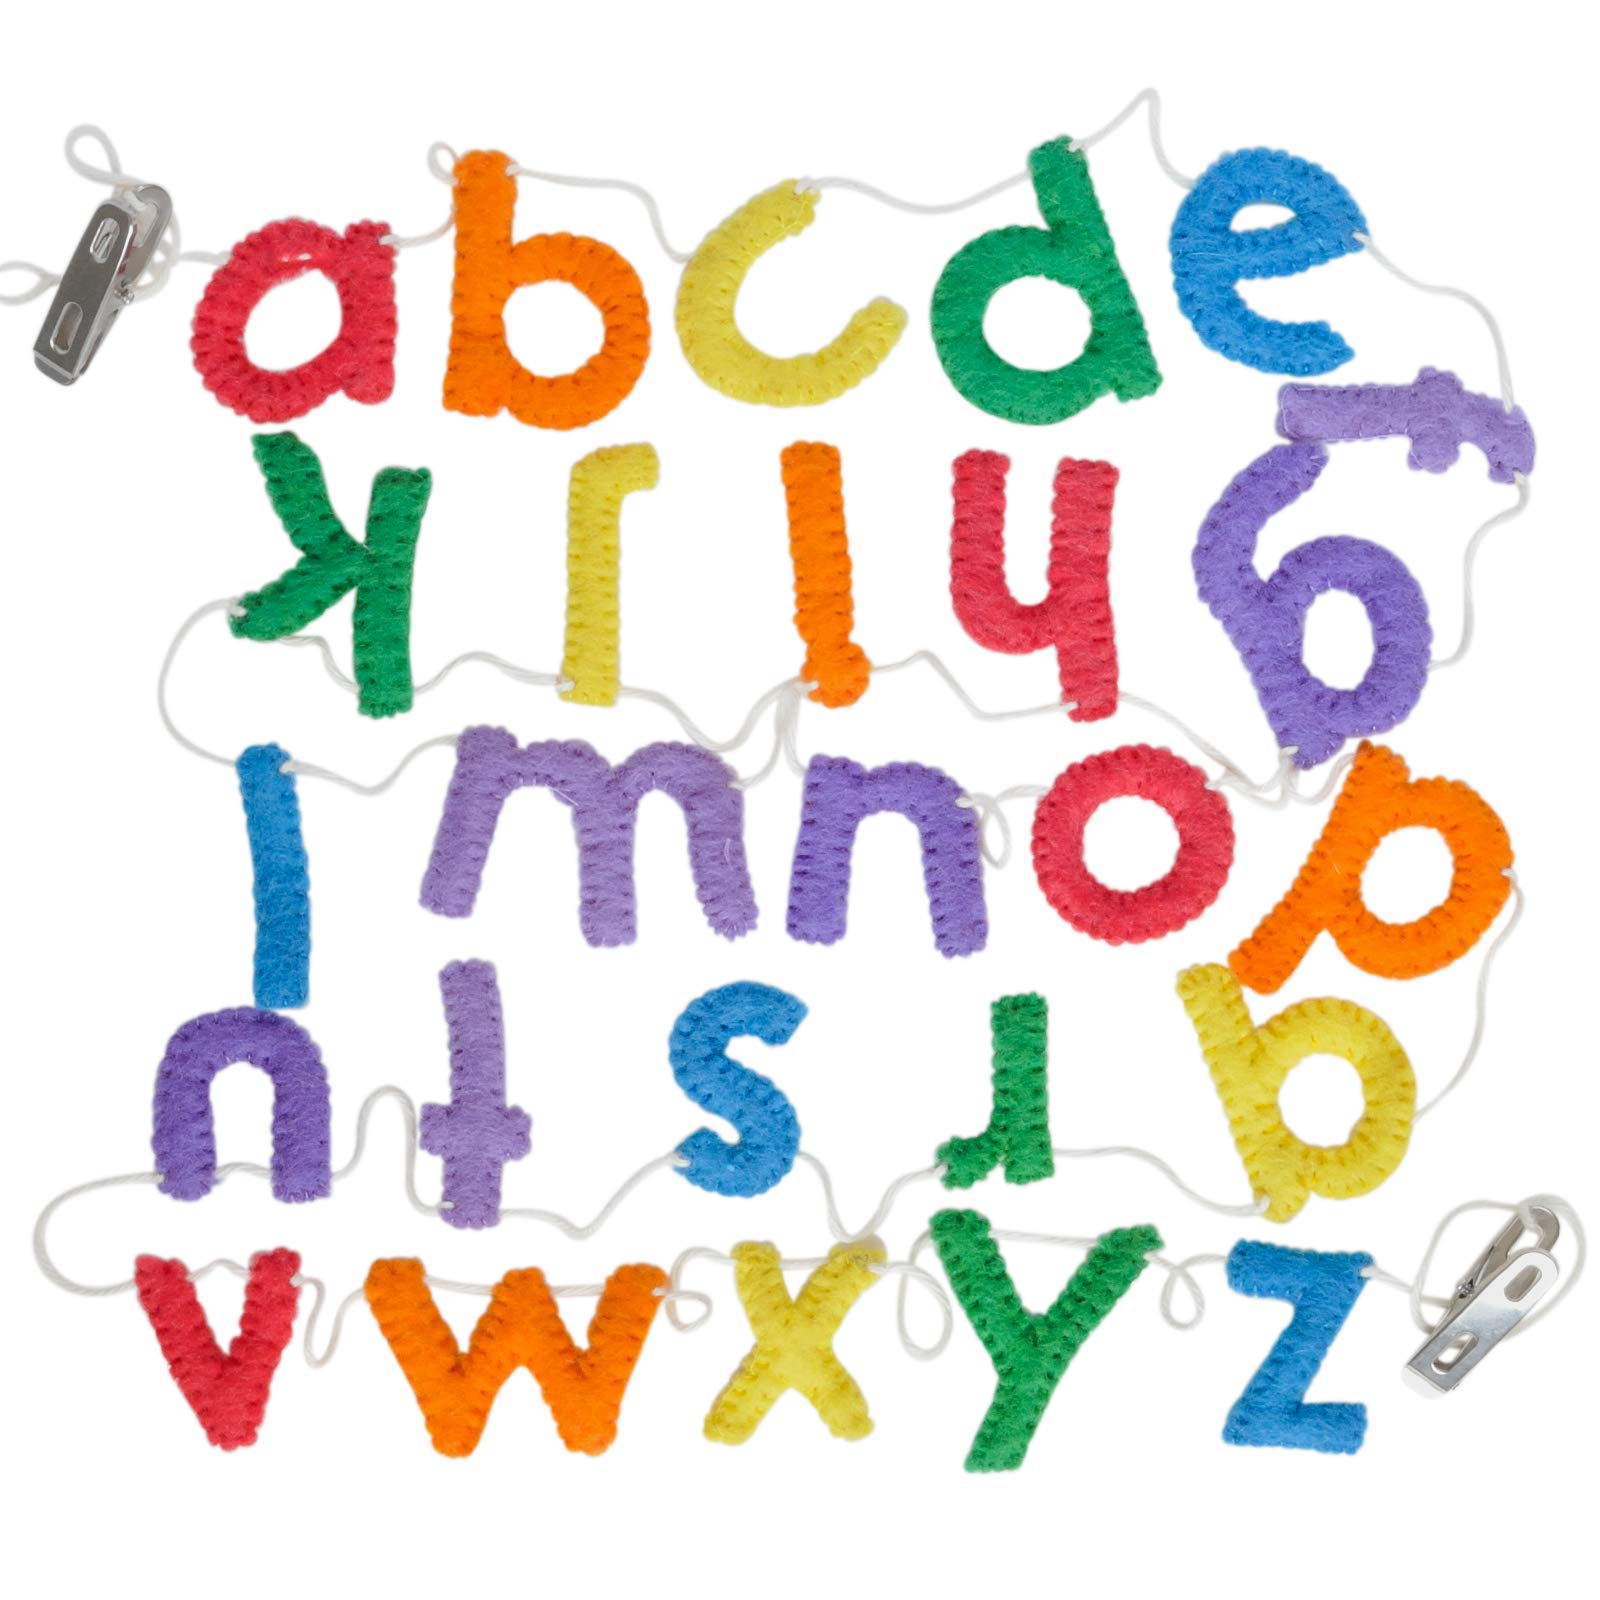 Handmade Wool Felt Alphabet Garland, Lower Case Letters, Rainbow Colors, Educational Decor for Toddlers Learning Letters and Colors, Great for School Room Decorations, or Play Room Decor (Lower case)